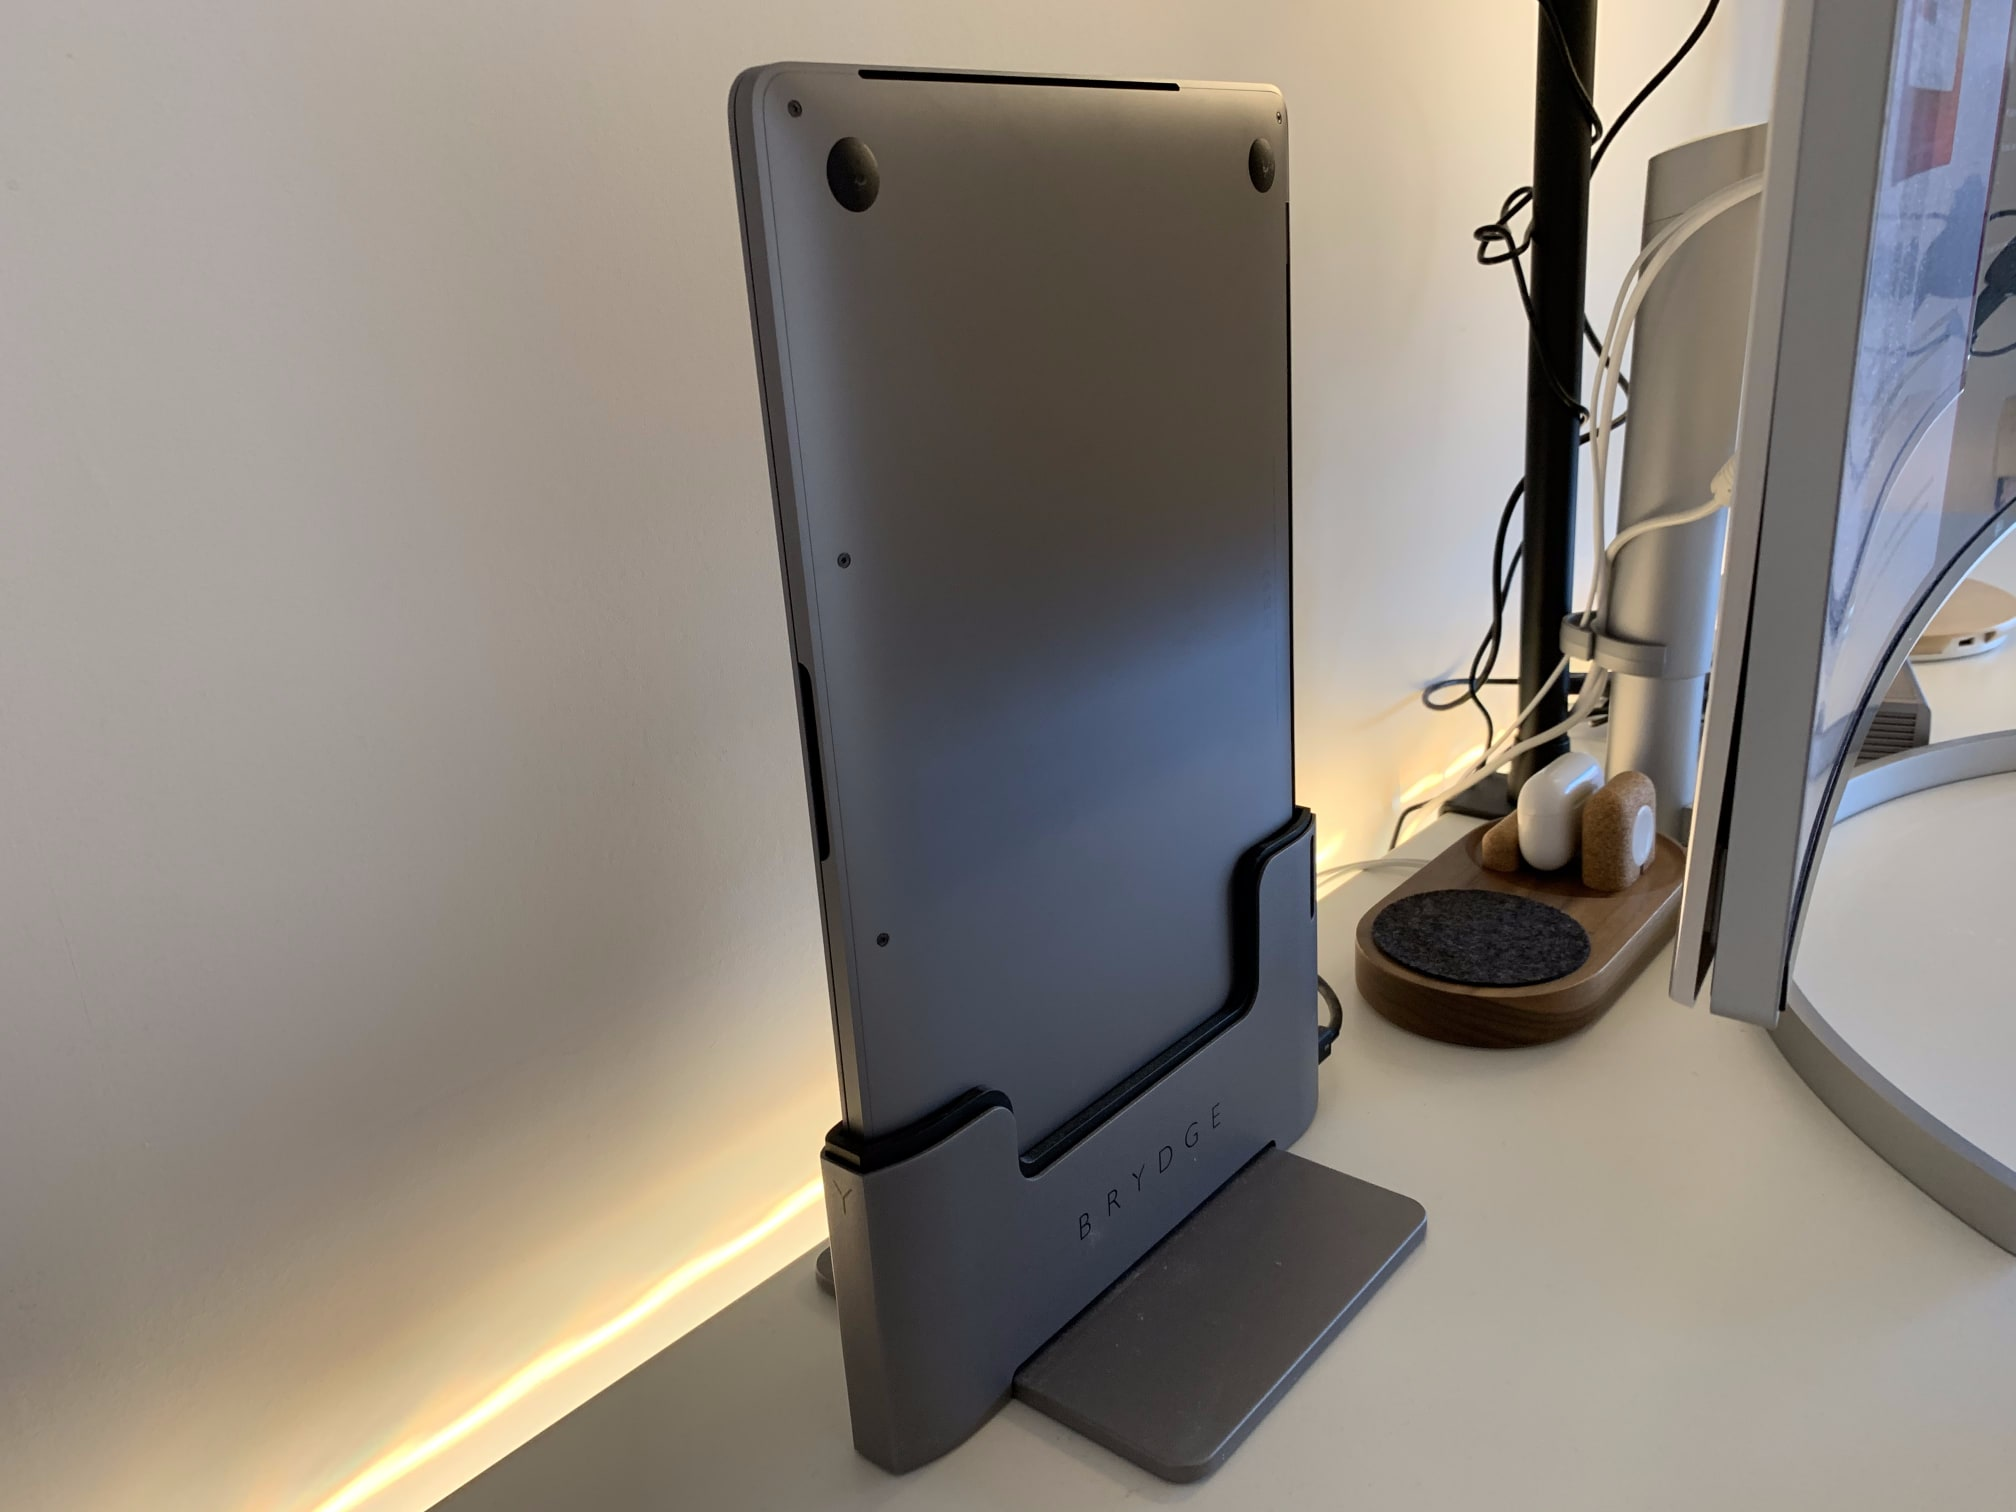 Brydge laptop stand